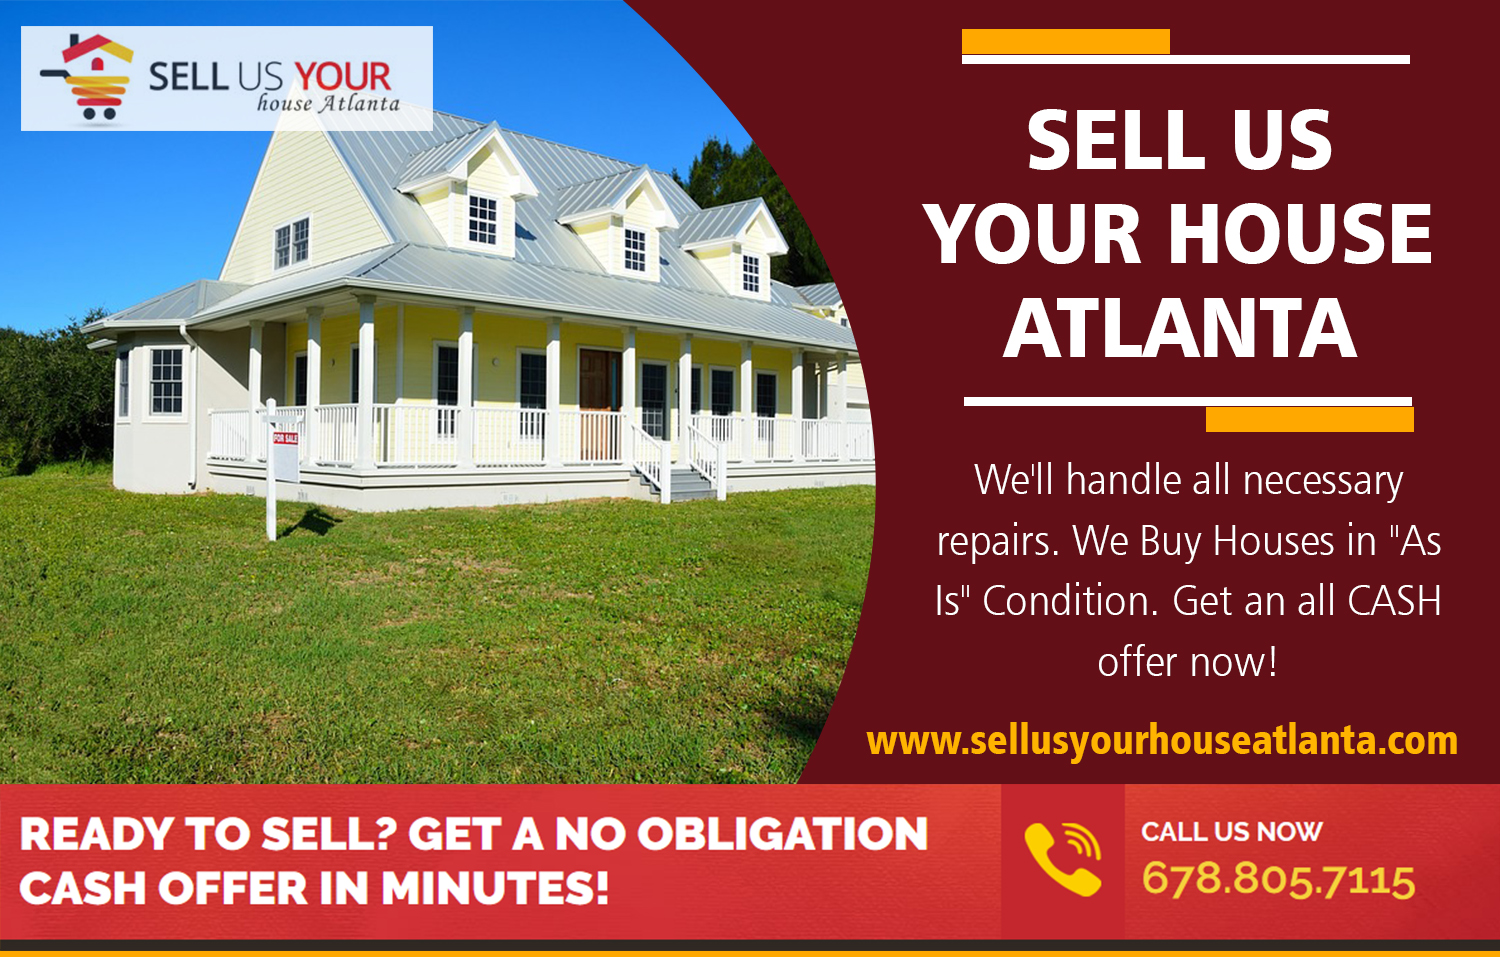 Sell Your House Atlanta